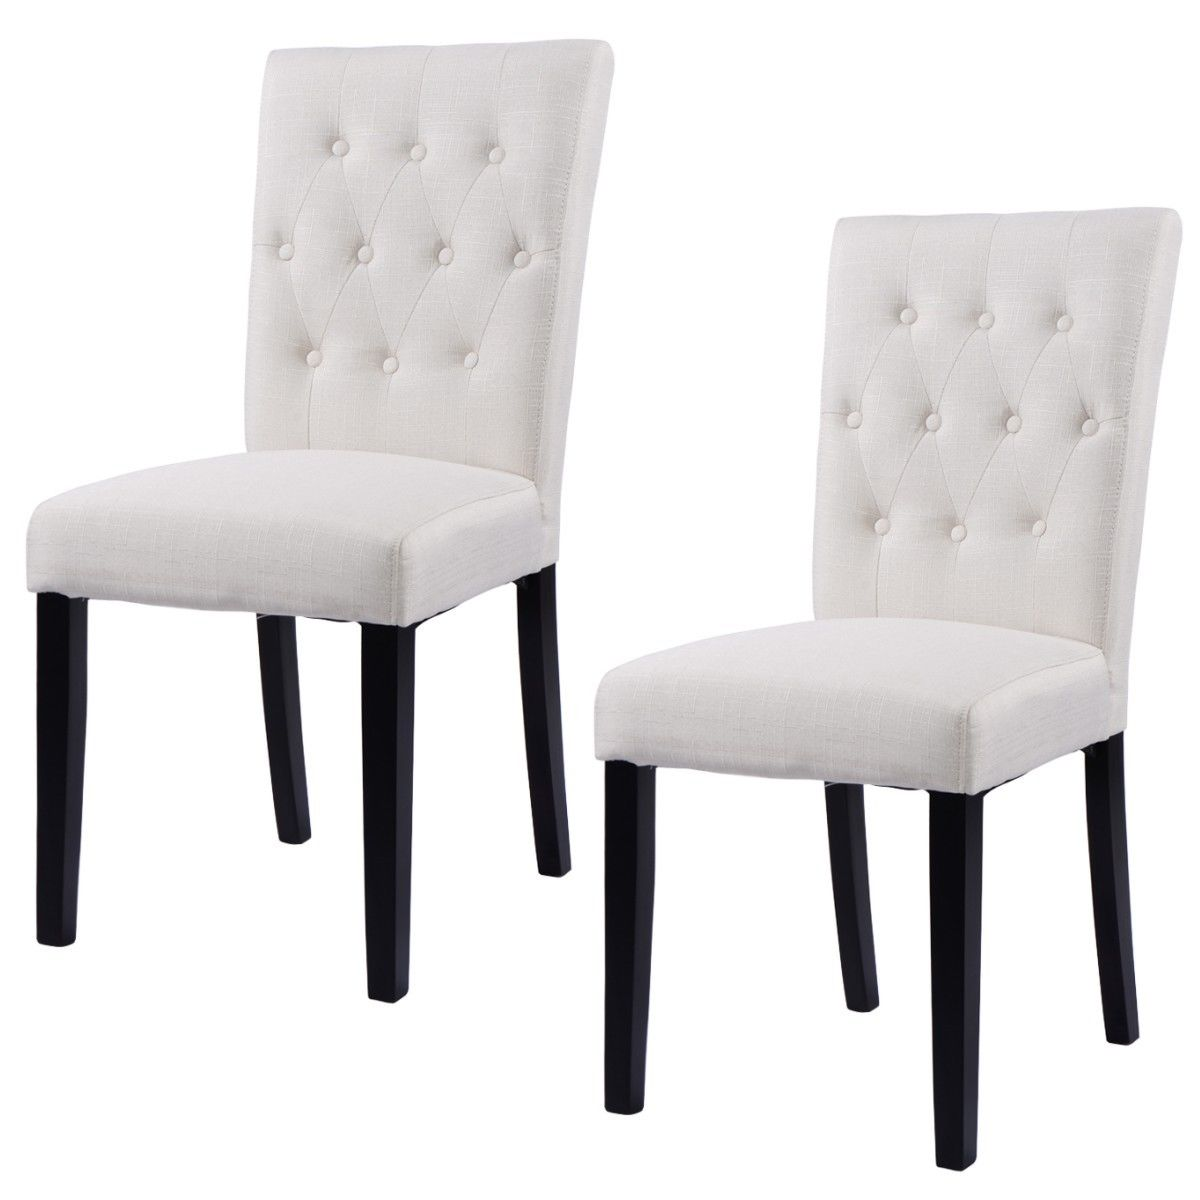 Giantex Set of 2pcs Fabric Dining Chair Armless Chair Modern Home Kitchen Living Room Furniture HW52778BE цена